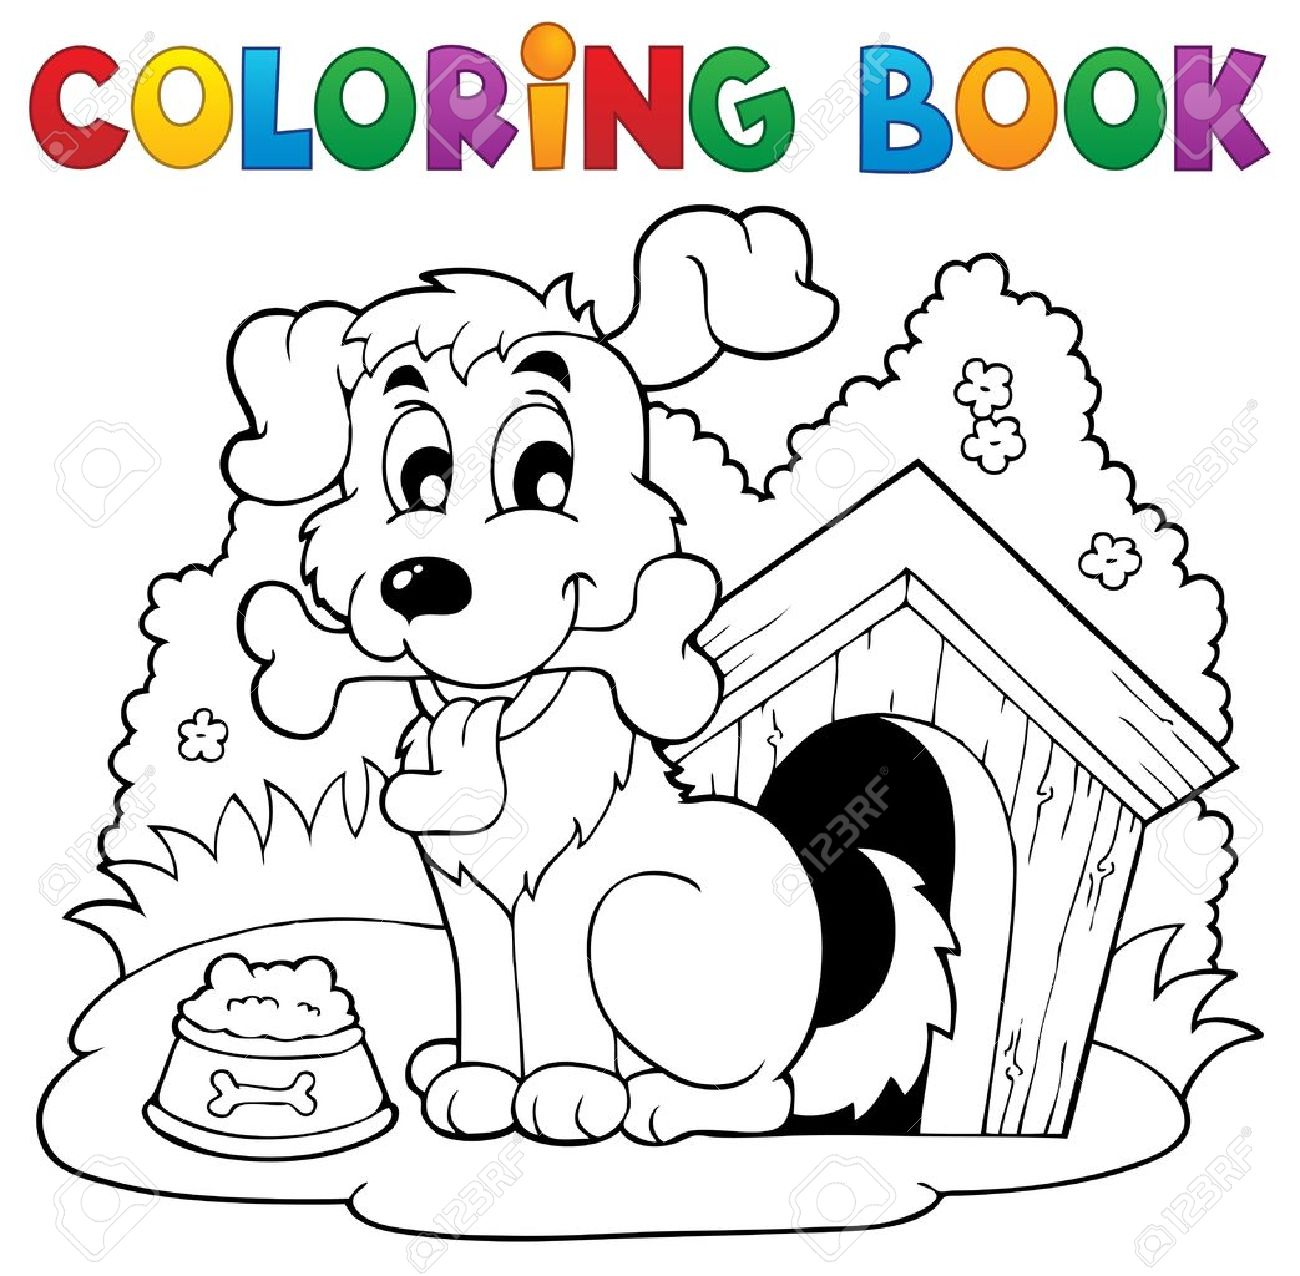 Coloring Book Dog Theme Royalty Free Cliparts, Vectors, And Stock ...